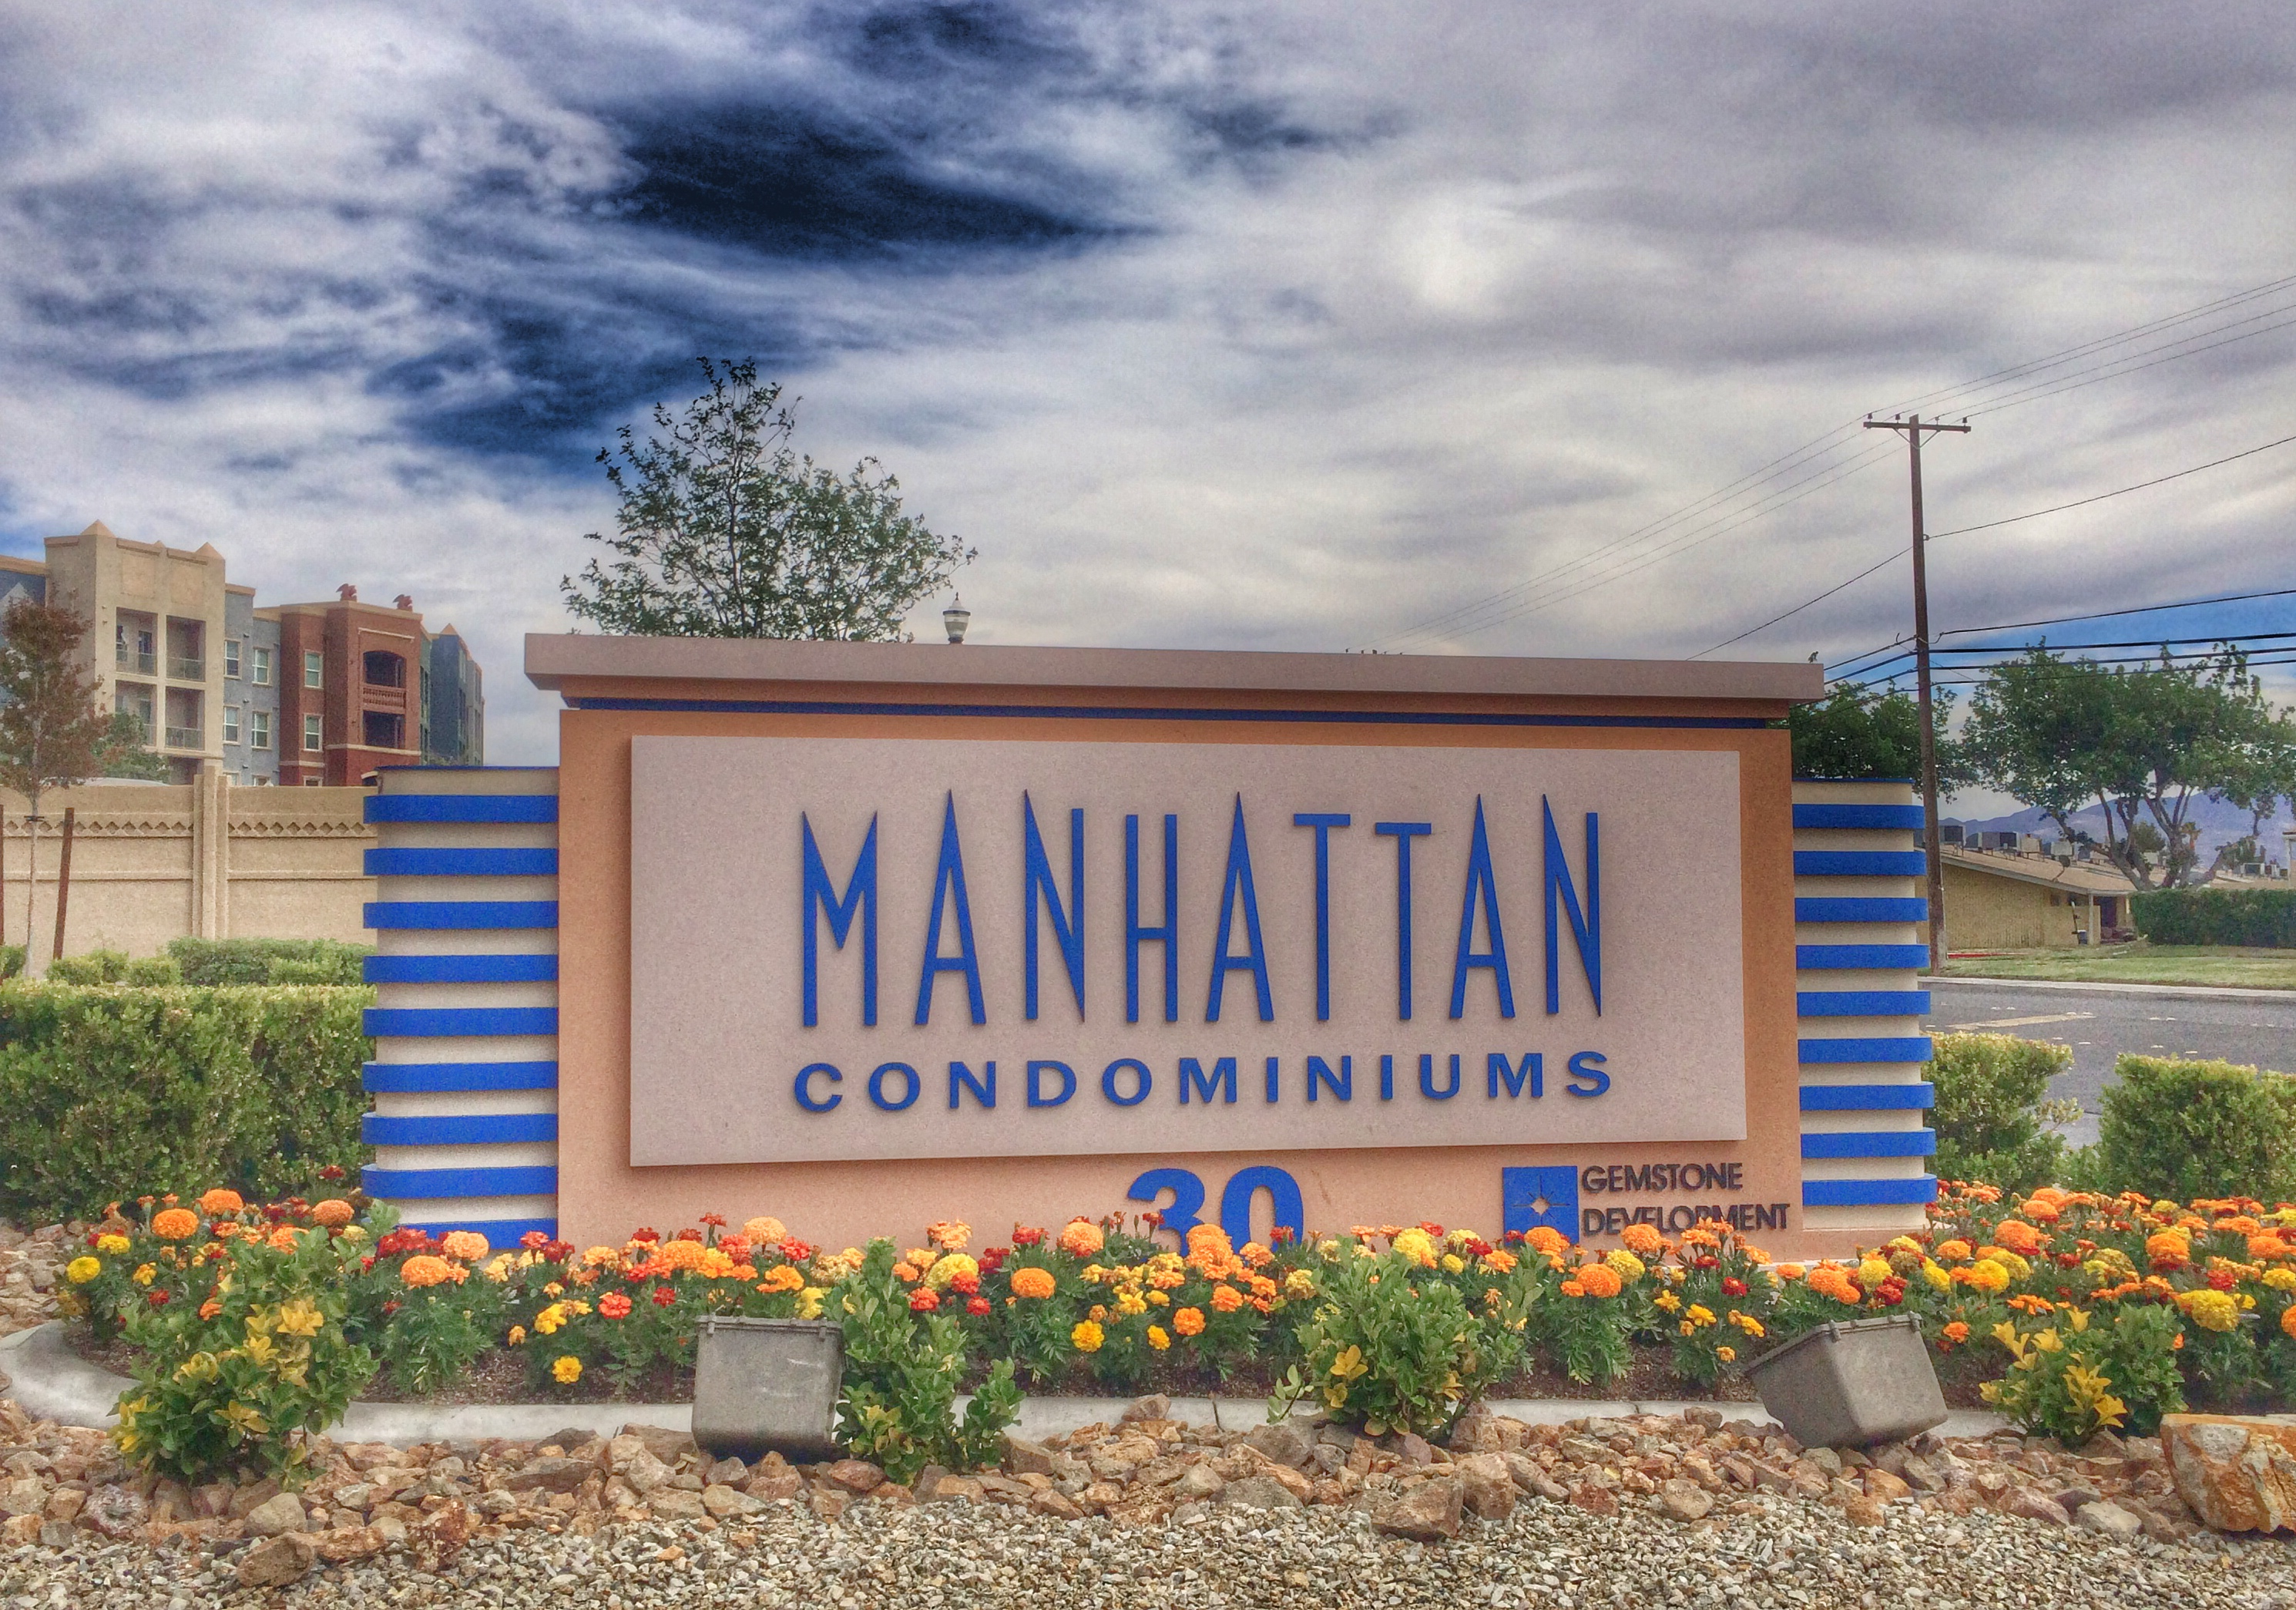 manhattan condos for sale uryhomes lasvegas